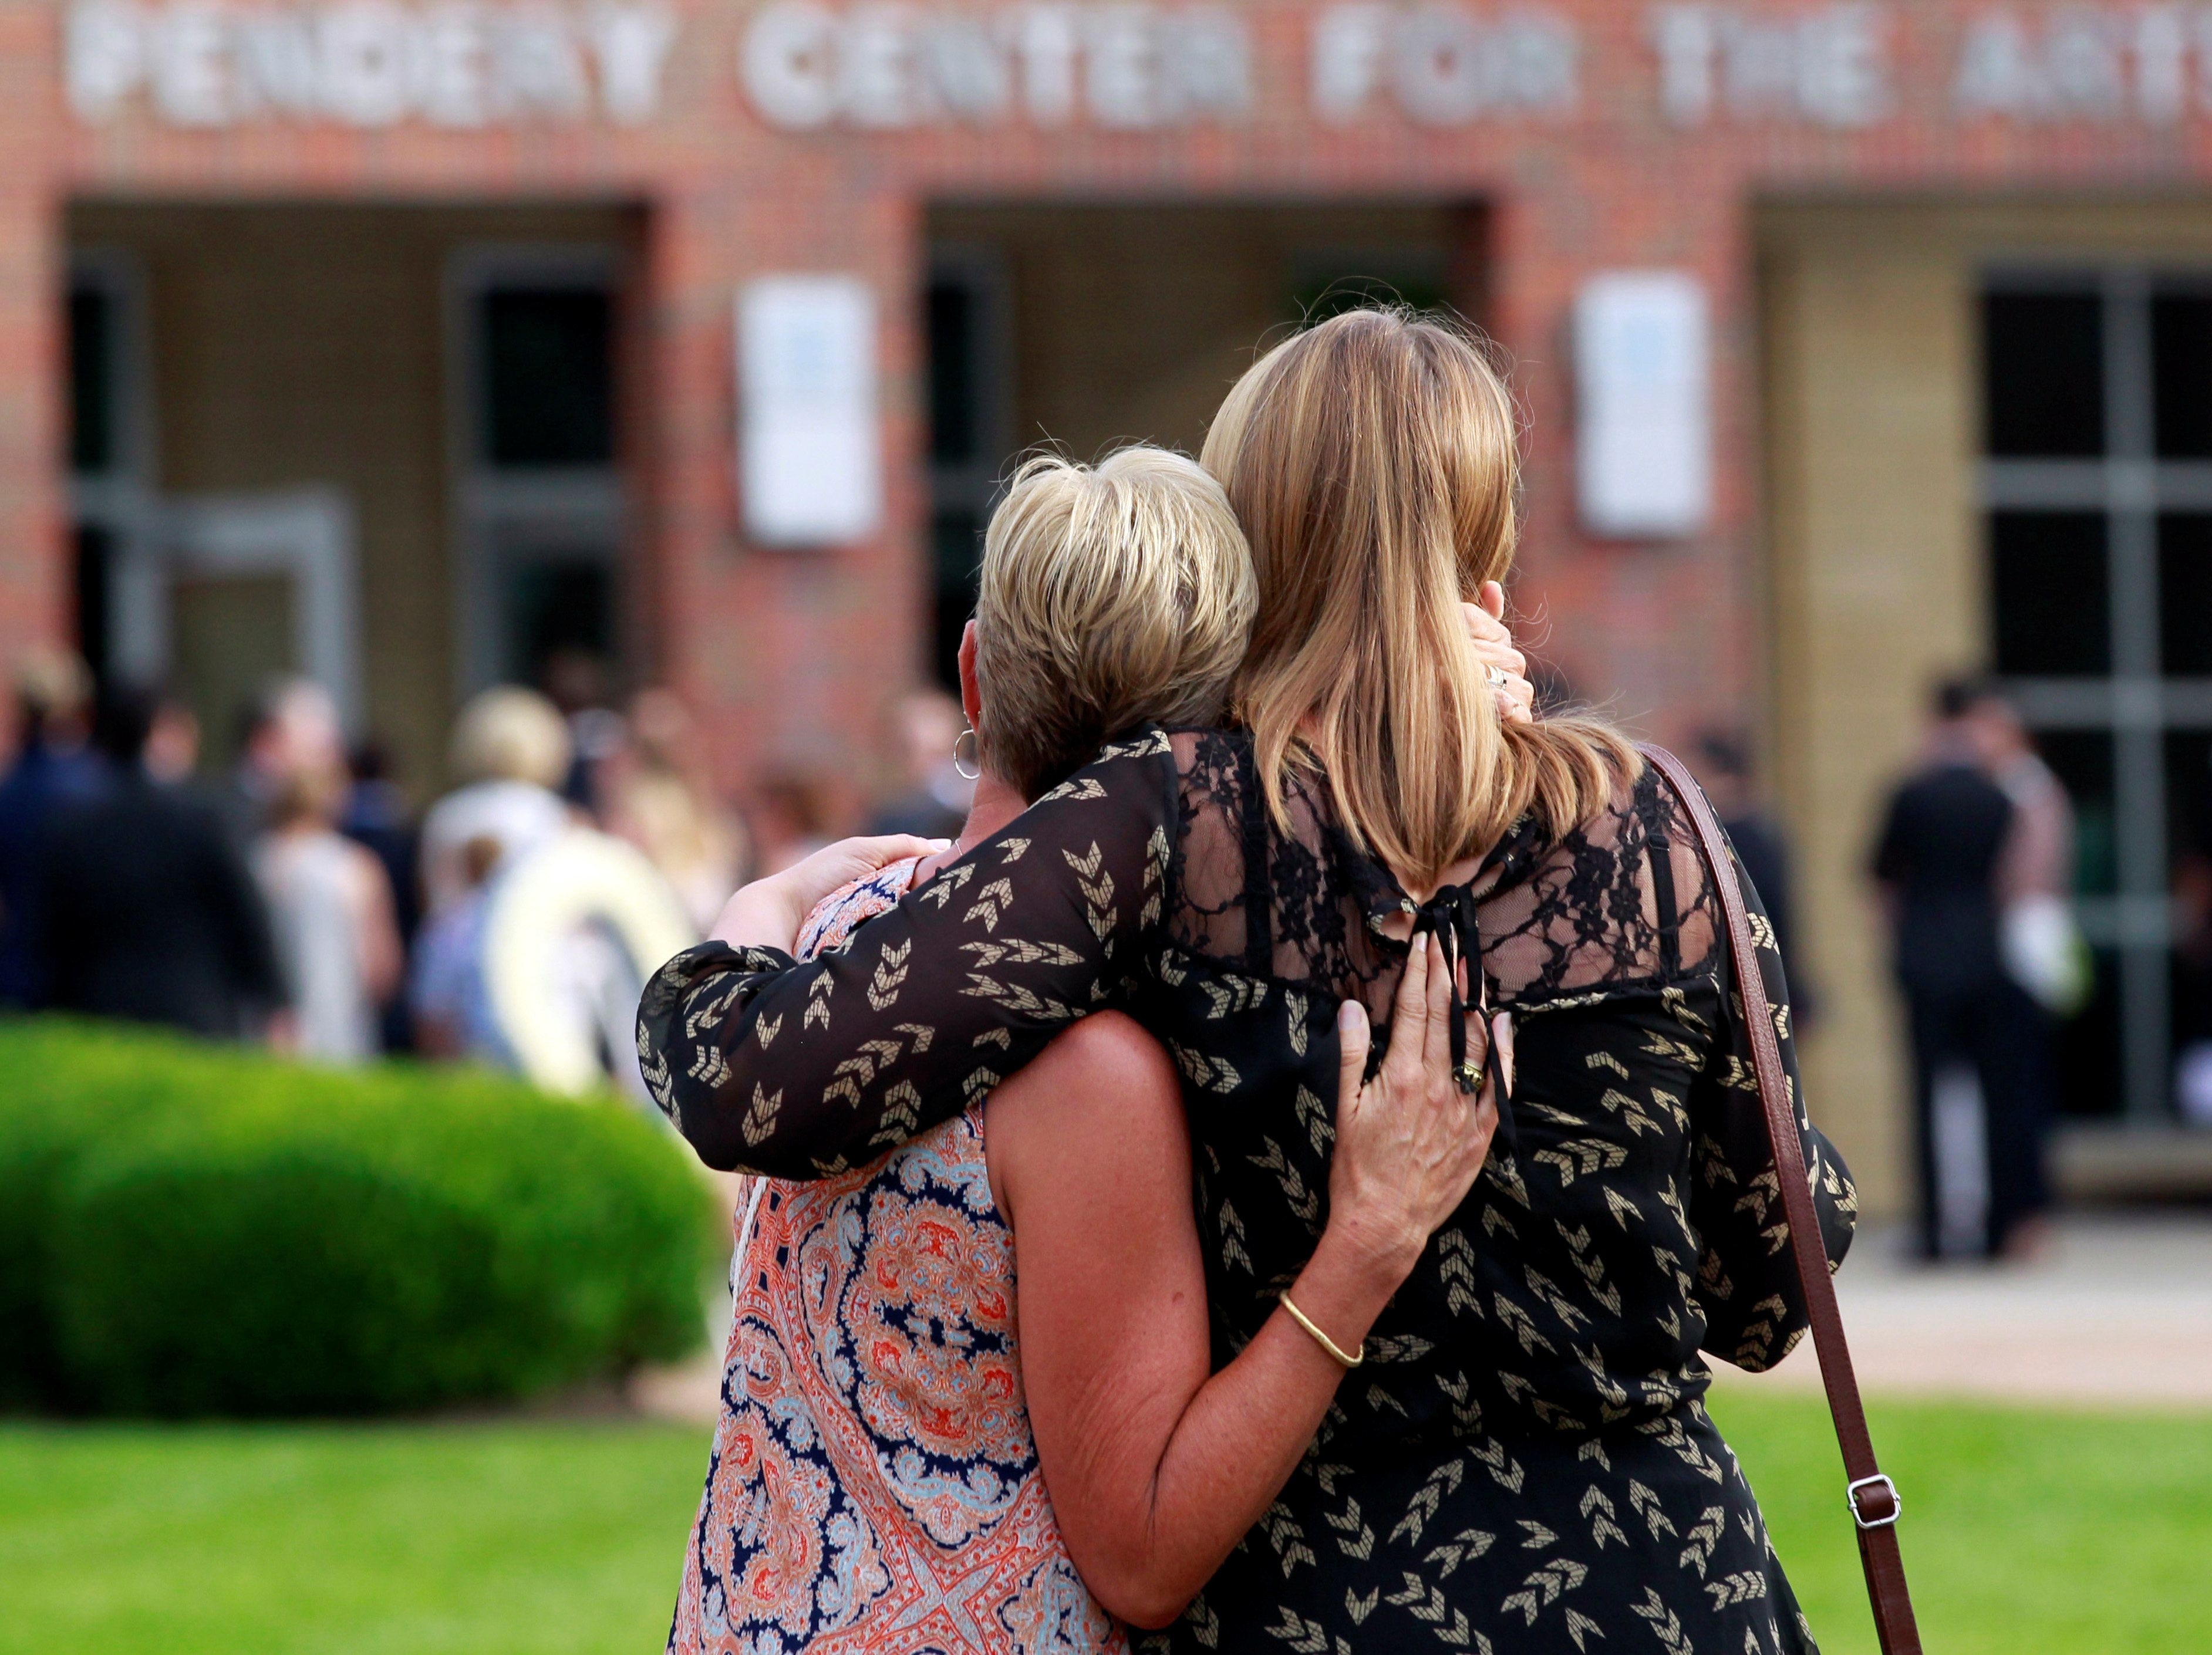 Mourners stand out side the art center before a funeral service for Otto Warmbier, who died after his release from North Korea, at Wyoming High School in Wyoming, Ohio, U.S. June 22, 2017.  REUTERS/John Sommers II       TPX IMAGES OF THE DAY